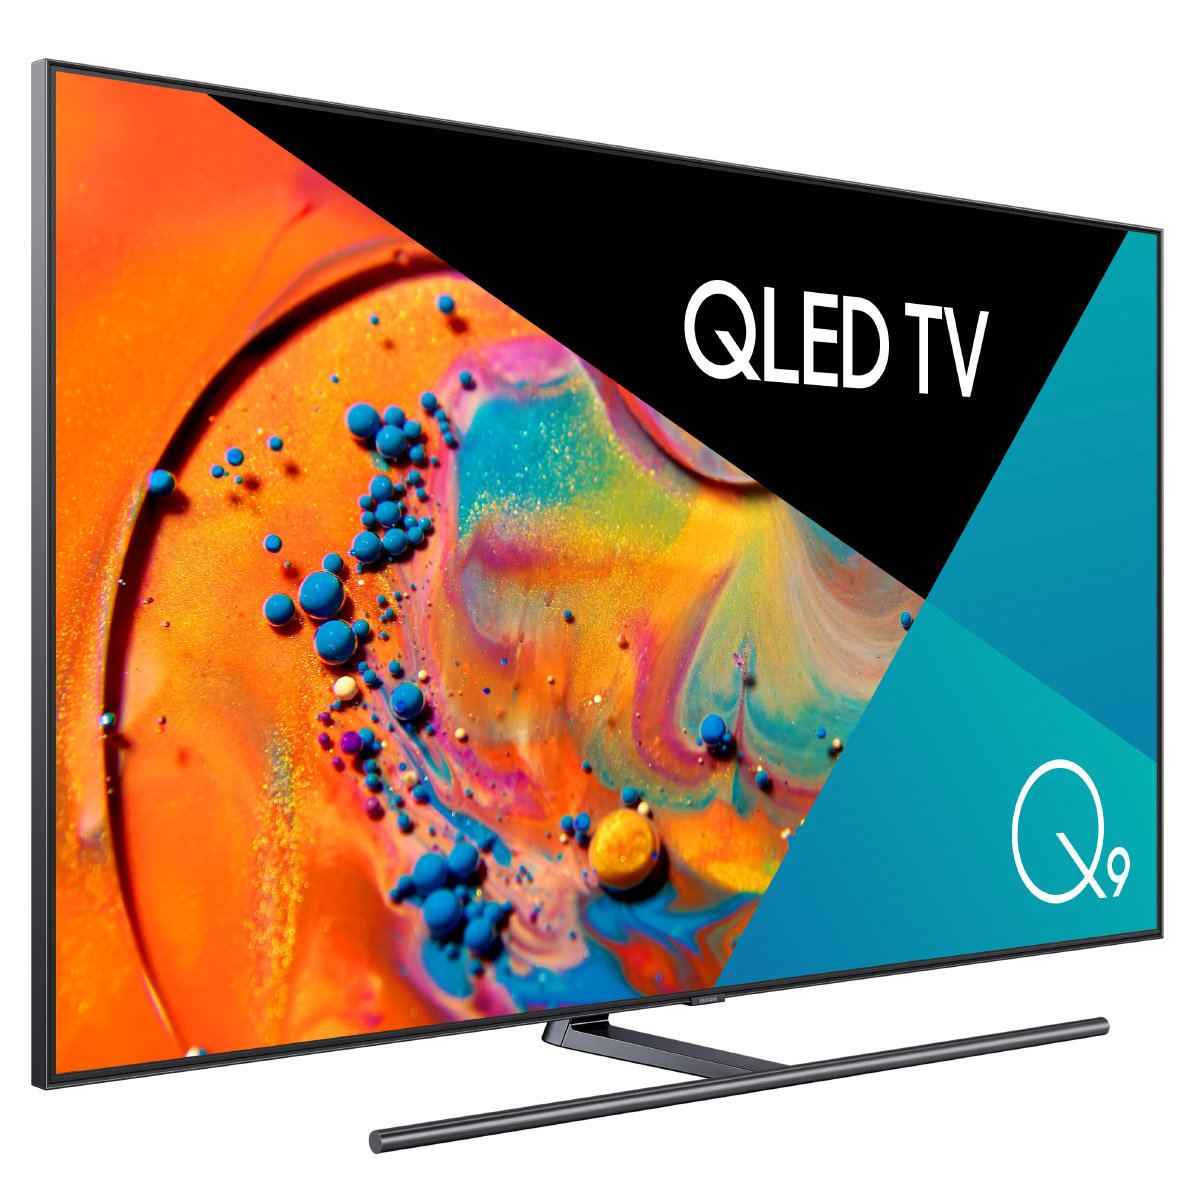 Samsung QA65Q9FN 65 Inch 165cm Smart 4K Ultra HD QLED TV